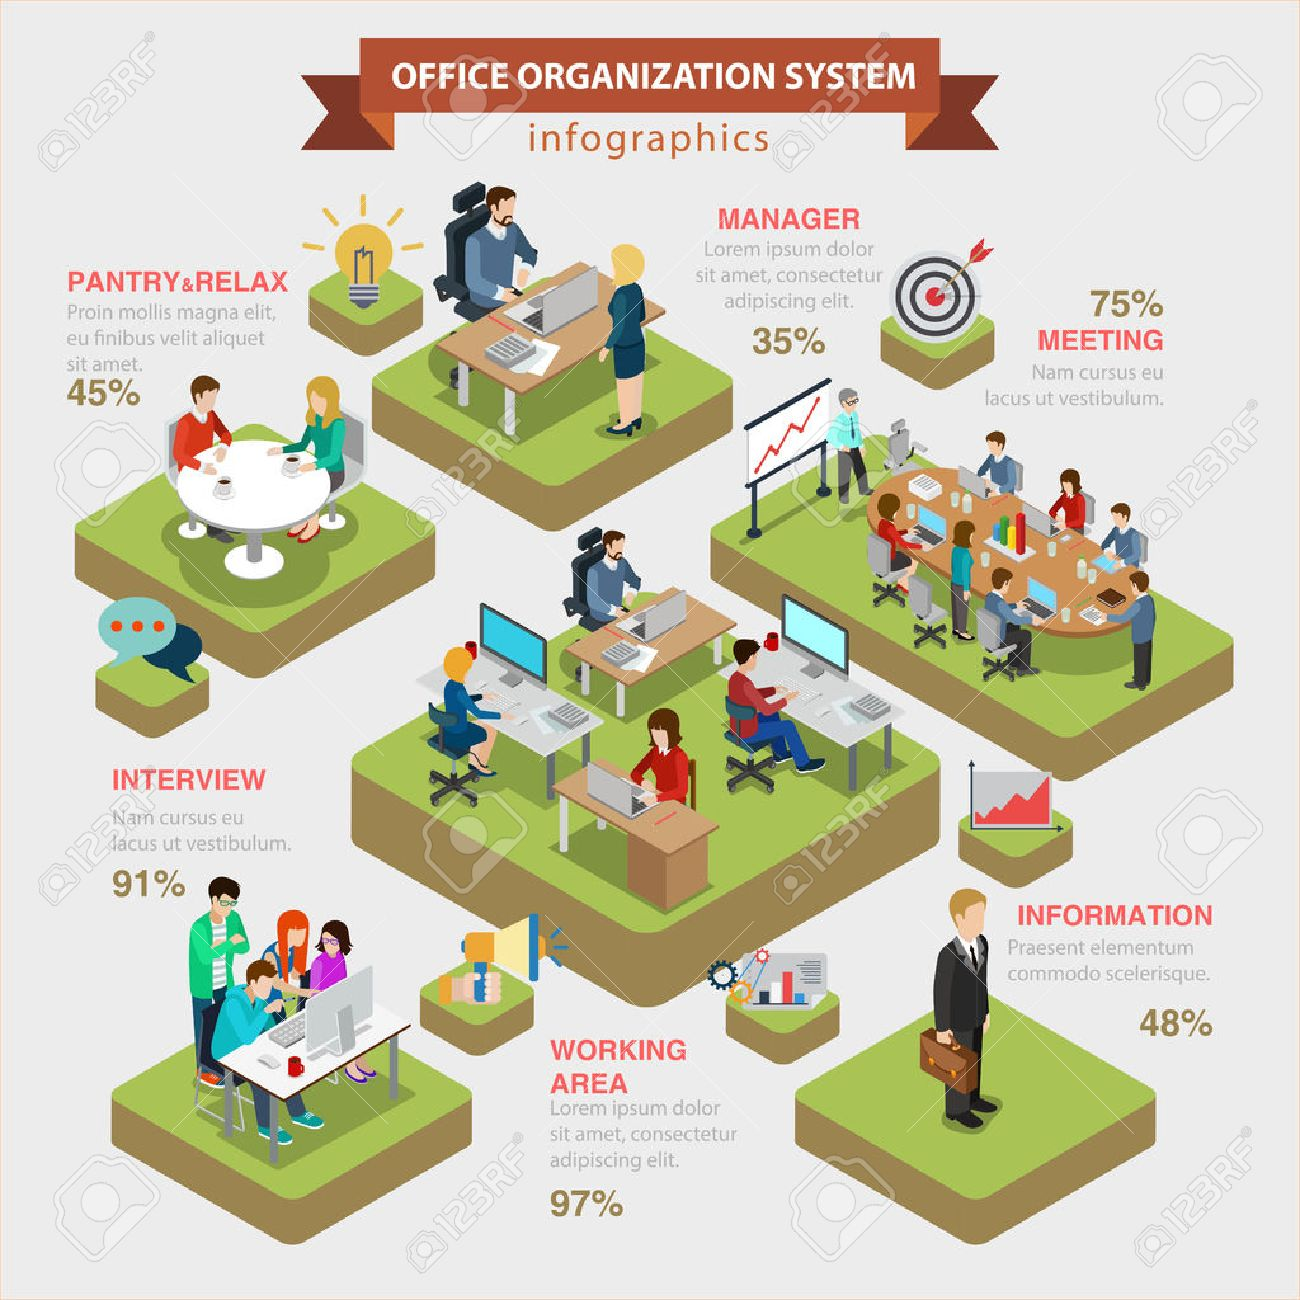 Office organization system structure flat 3d isometric style thematic infographics concept. Manager meeting information interview working area info graphic. Conceptual web site infographic collection. Standard-Bild - 56909516